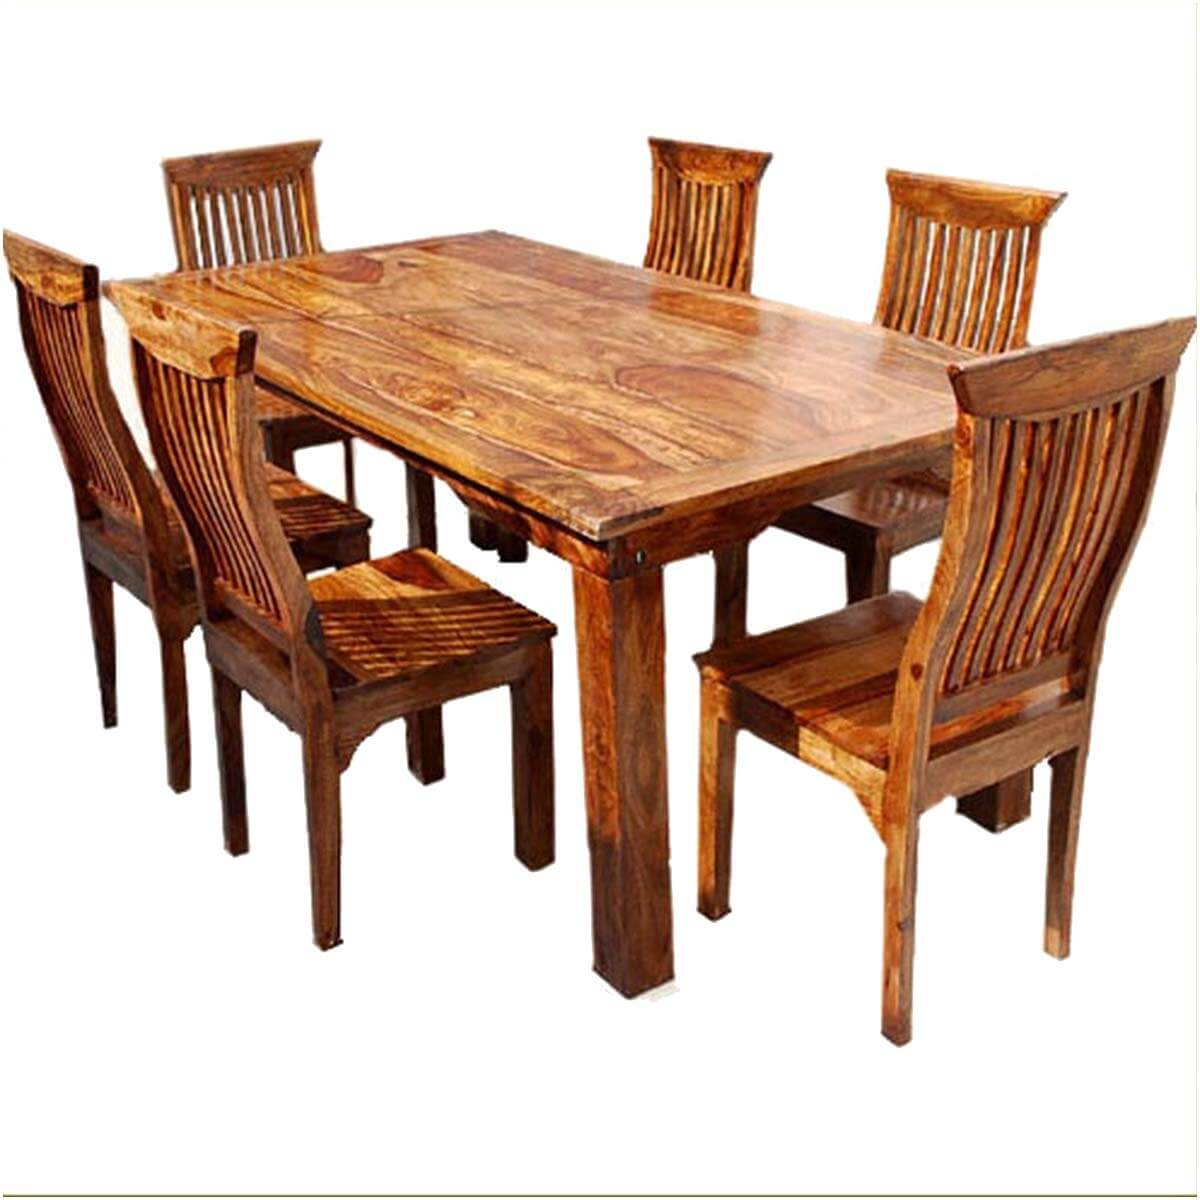 Dallas ranch solid wood rustic dining table chairs hutch set for Dinner table wood